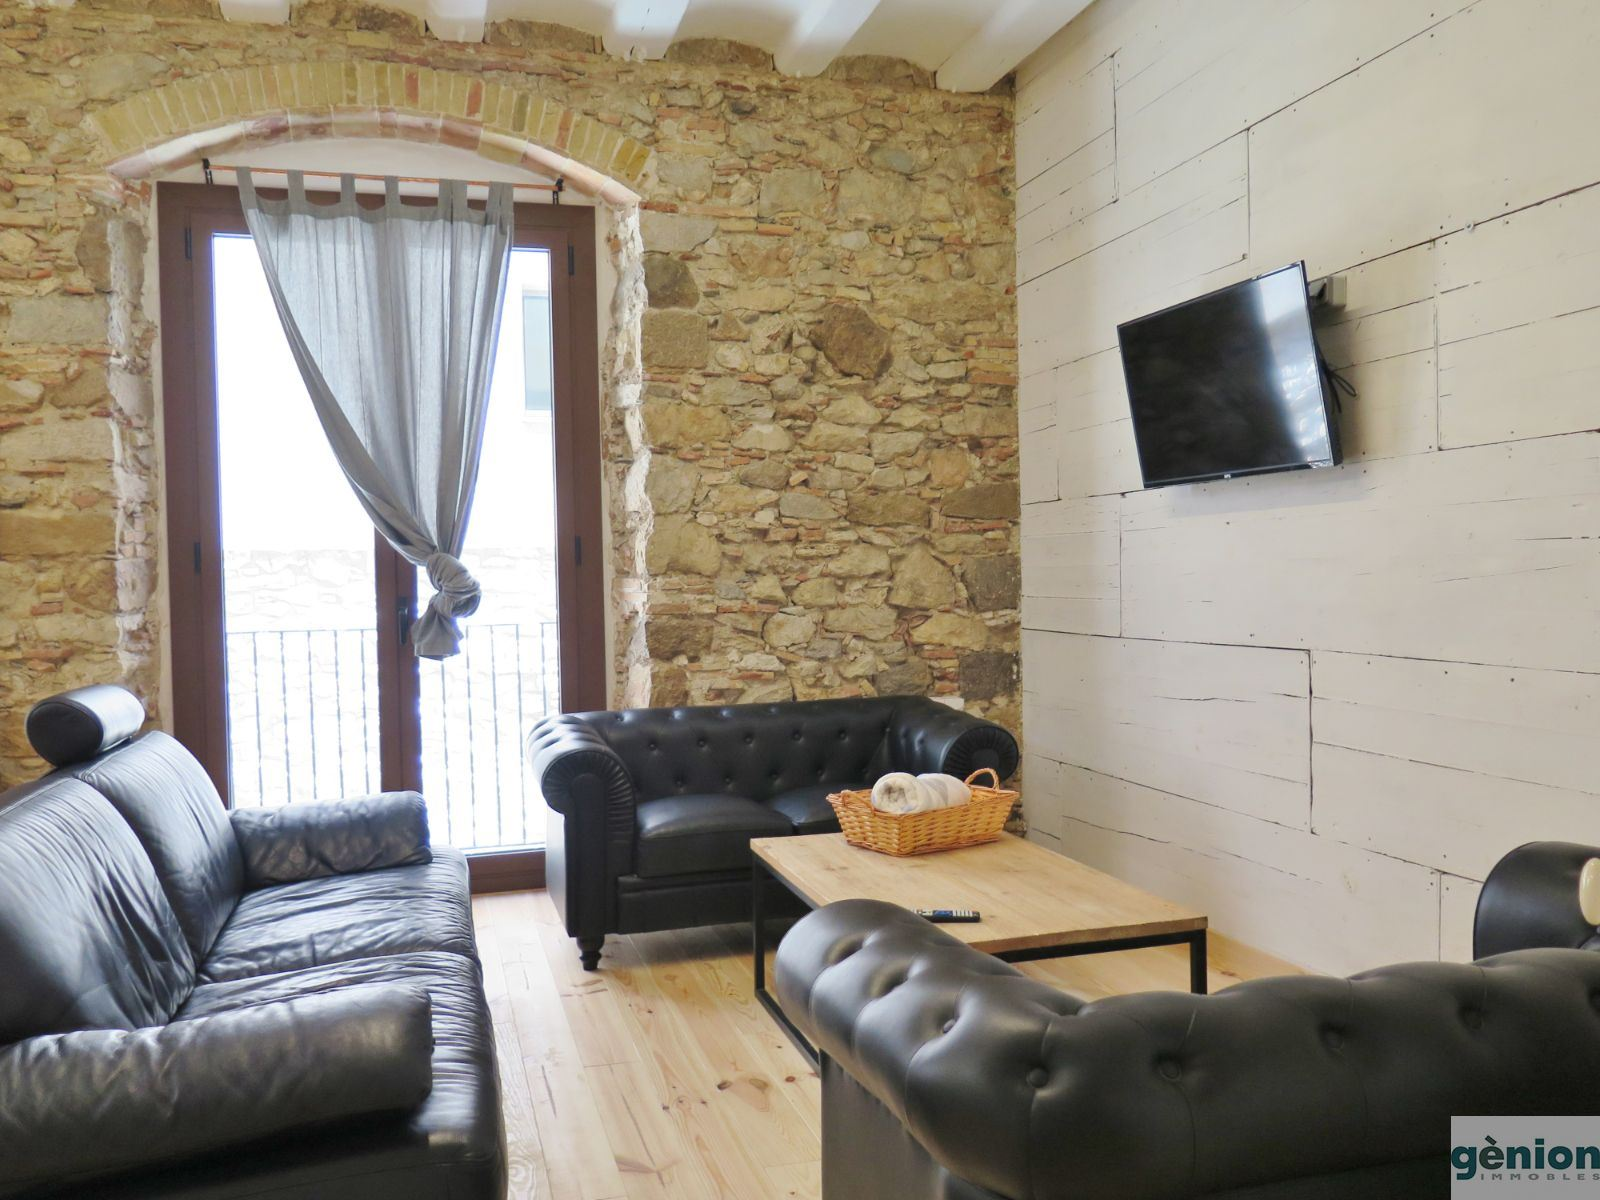 244 m² TWO-STOREY APARTMENT WITH 70 m² PATIO AND SWIMMING POOL, IN THE HEART OF GIRONA'S BARRI VELL (OLD QUARTER)